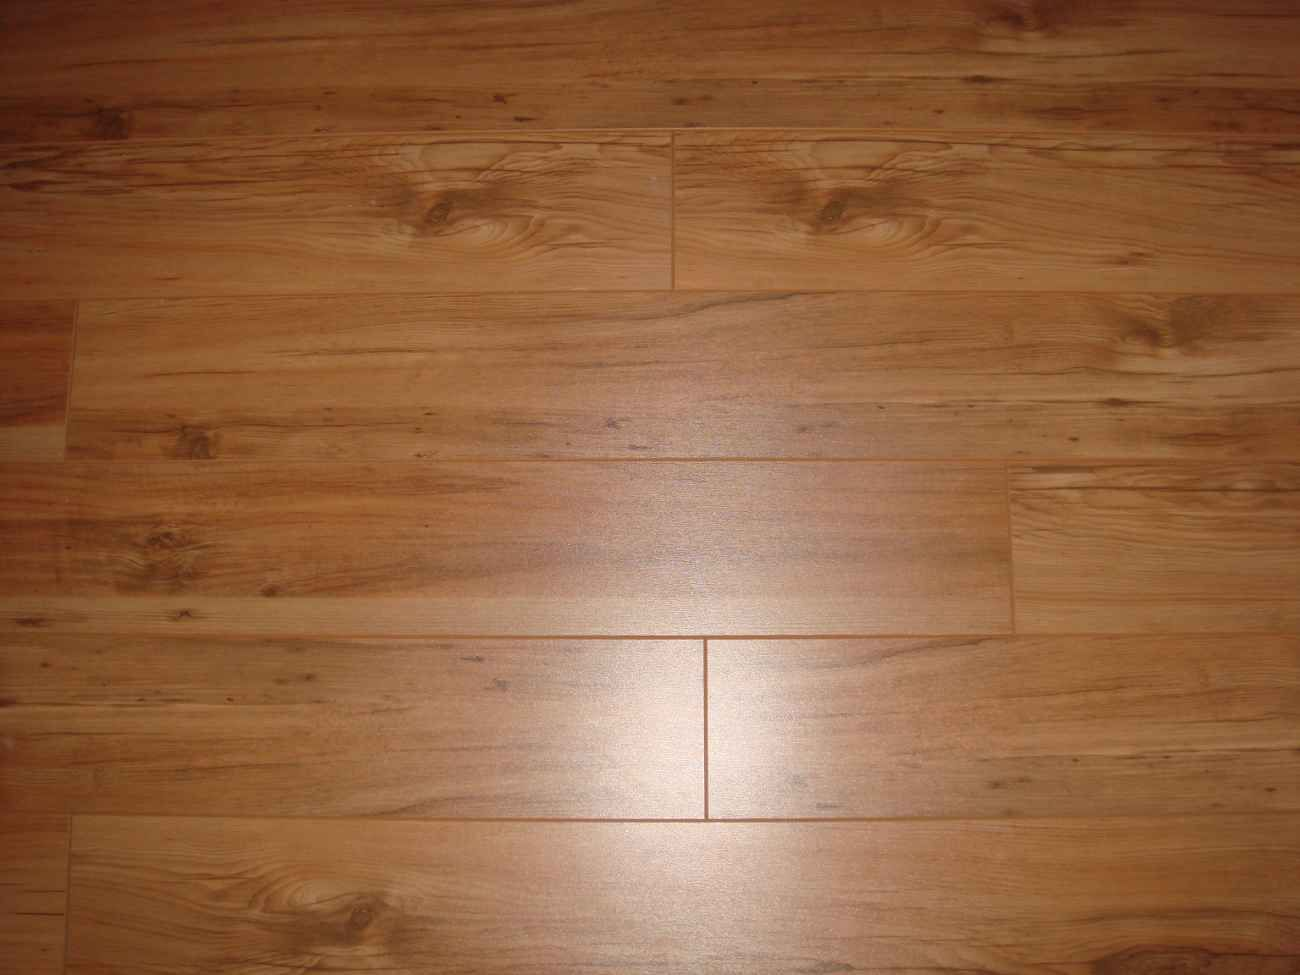 ceramic tile that looks like wood | Wooden Ceramic Tile Floors | Feel The  Home - 25+ Best Ideas About Ceramic Wood Floors On Pinterest Wide Plank